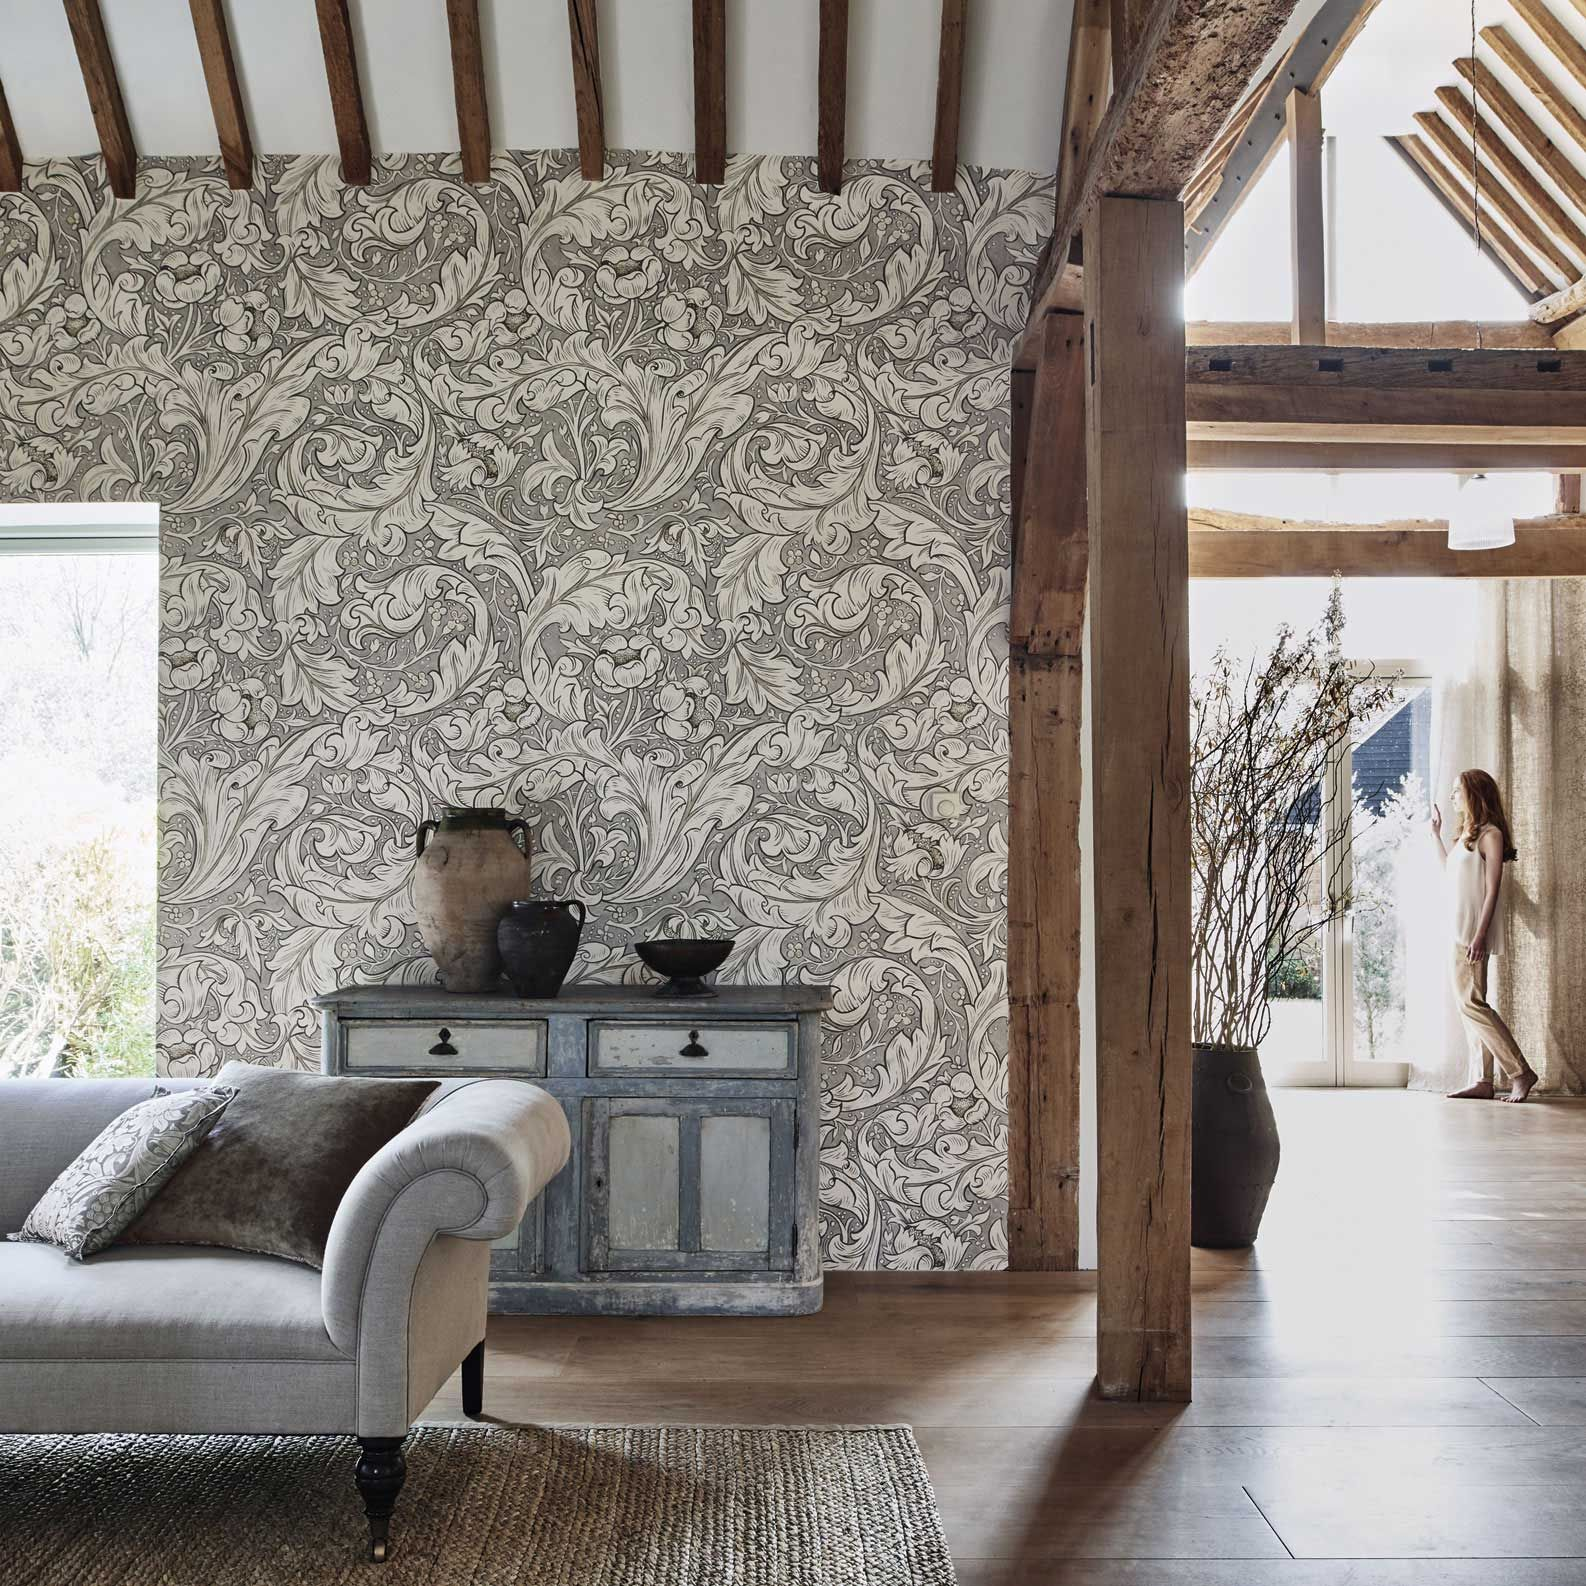 The Original Morris & Co Arts and crafts fabrics and wallpaper